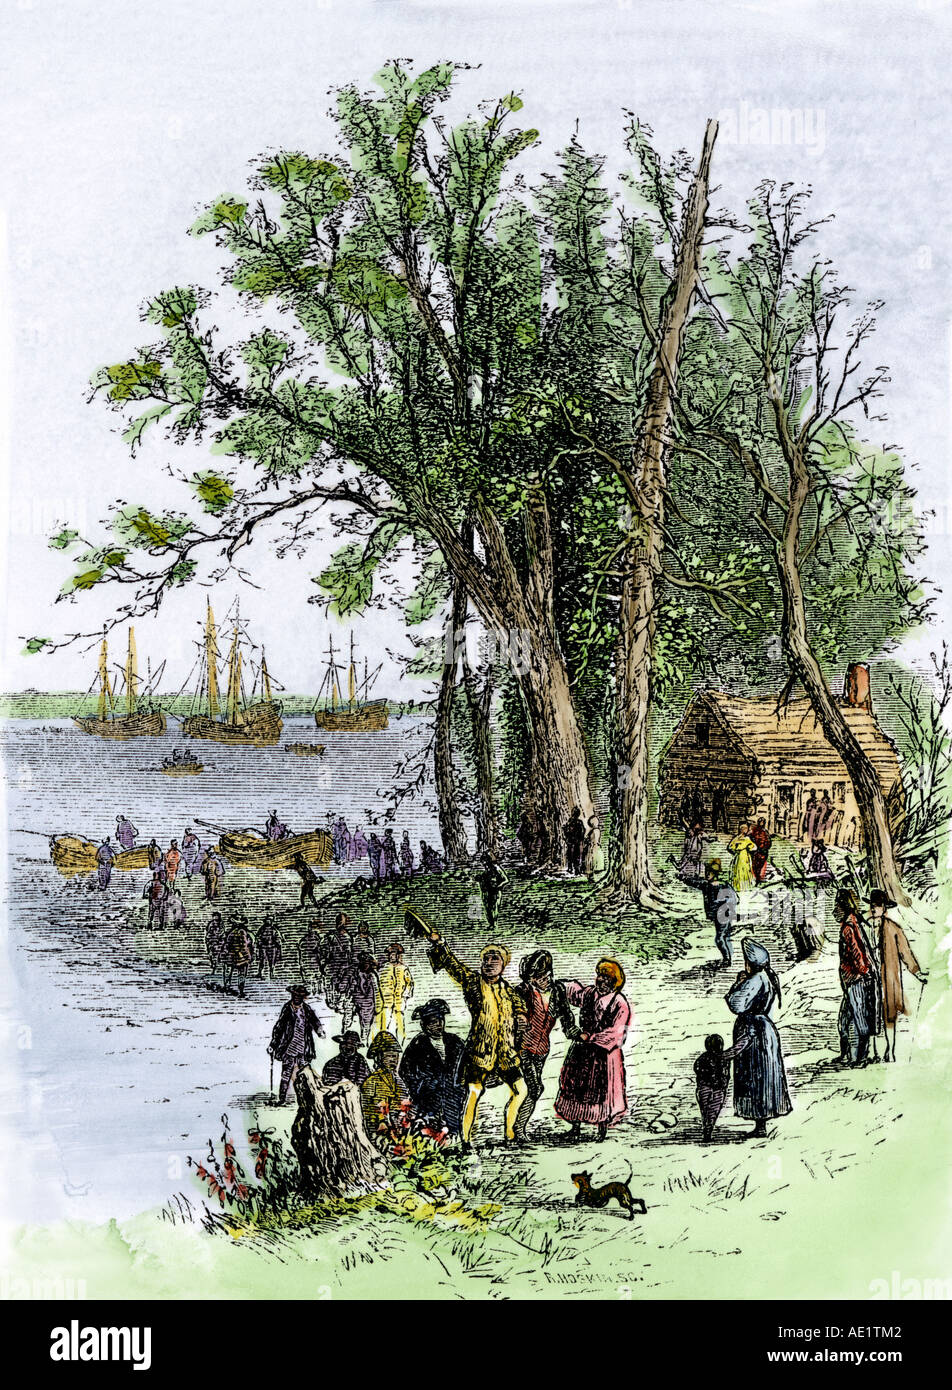 Landing of William Penn and colonists at Philadelphia 1682. Hand-colored woodcut - Stock Image